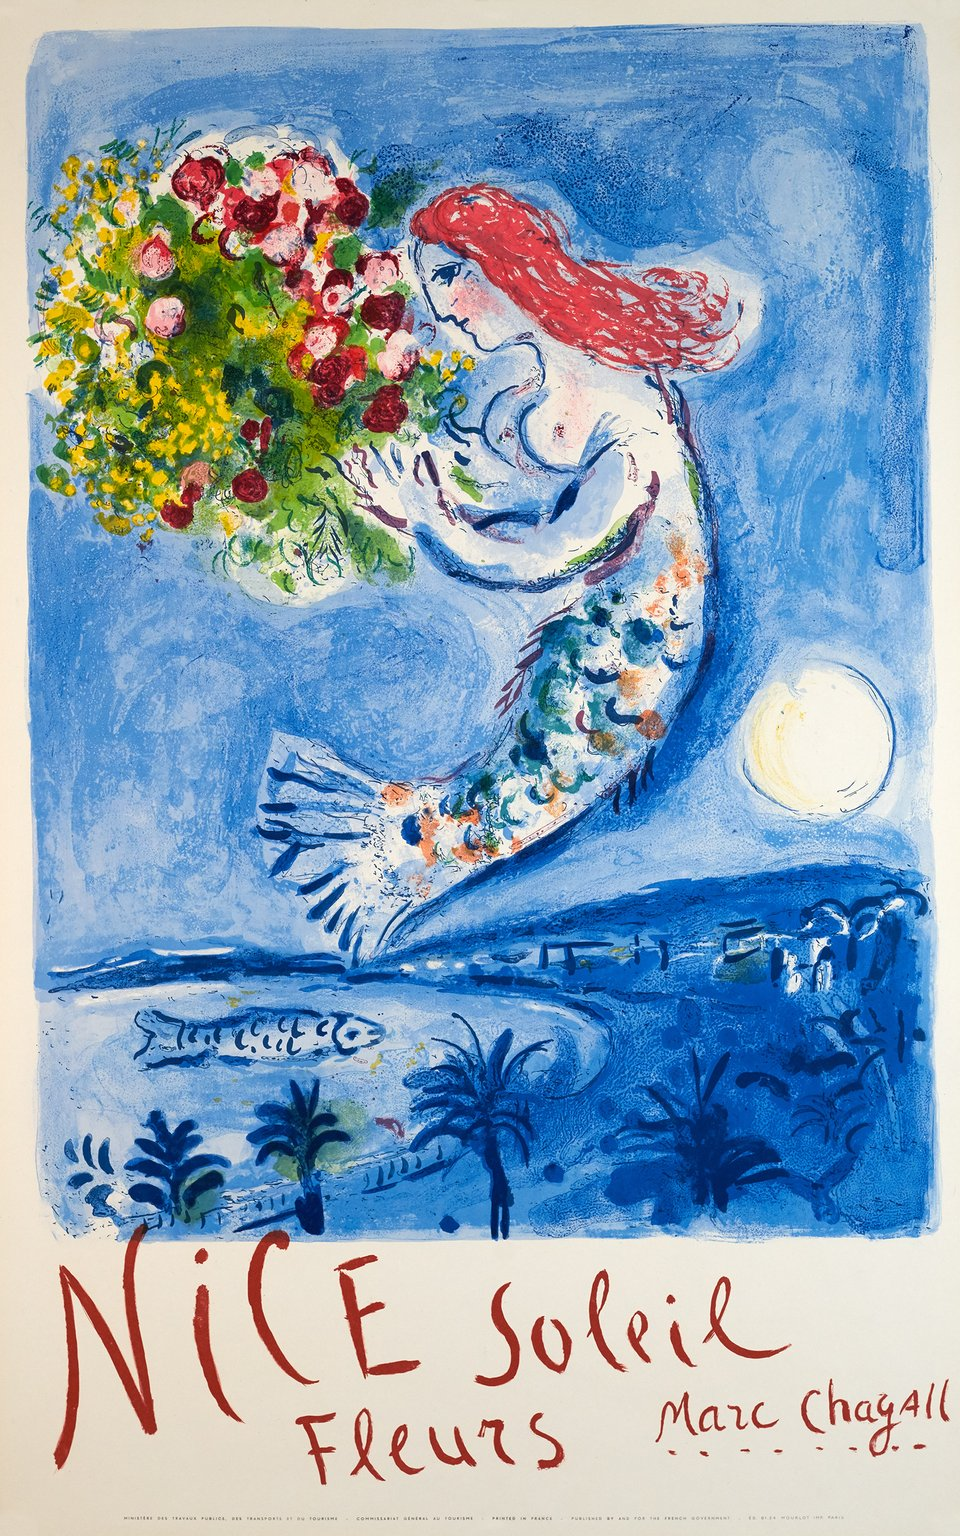 Nice, Soleil Fleurs Marc Chagall – Vintage poster – Marc CHAGALL – 1962